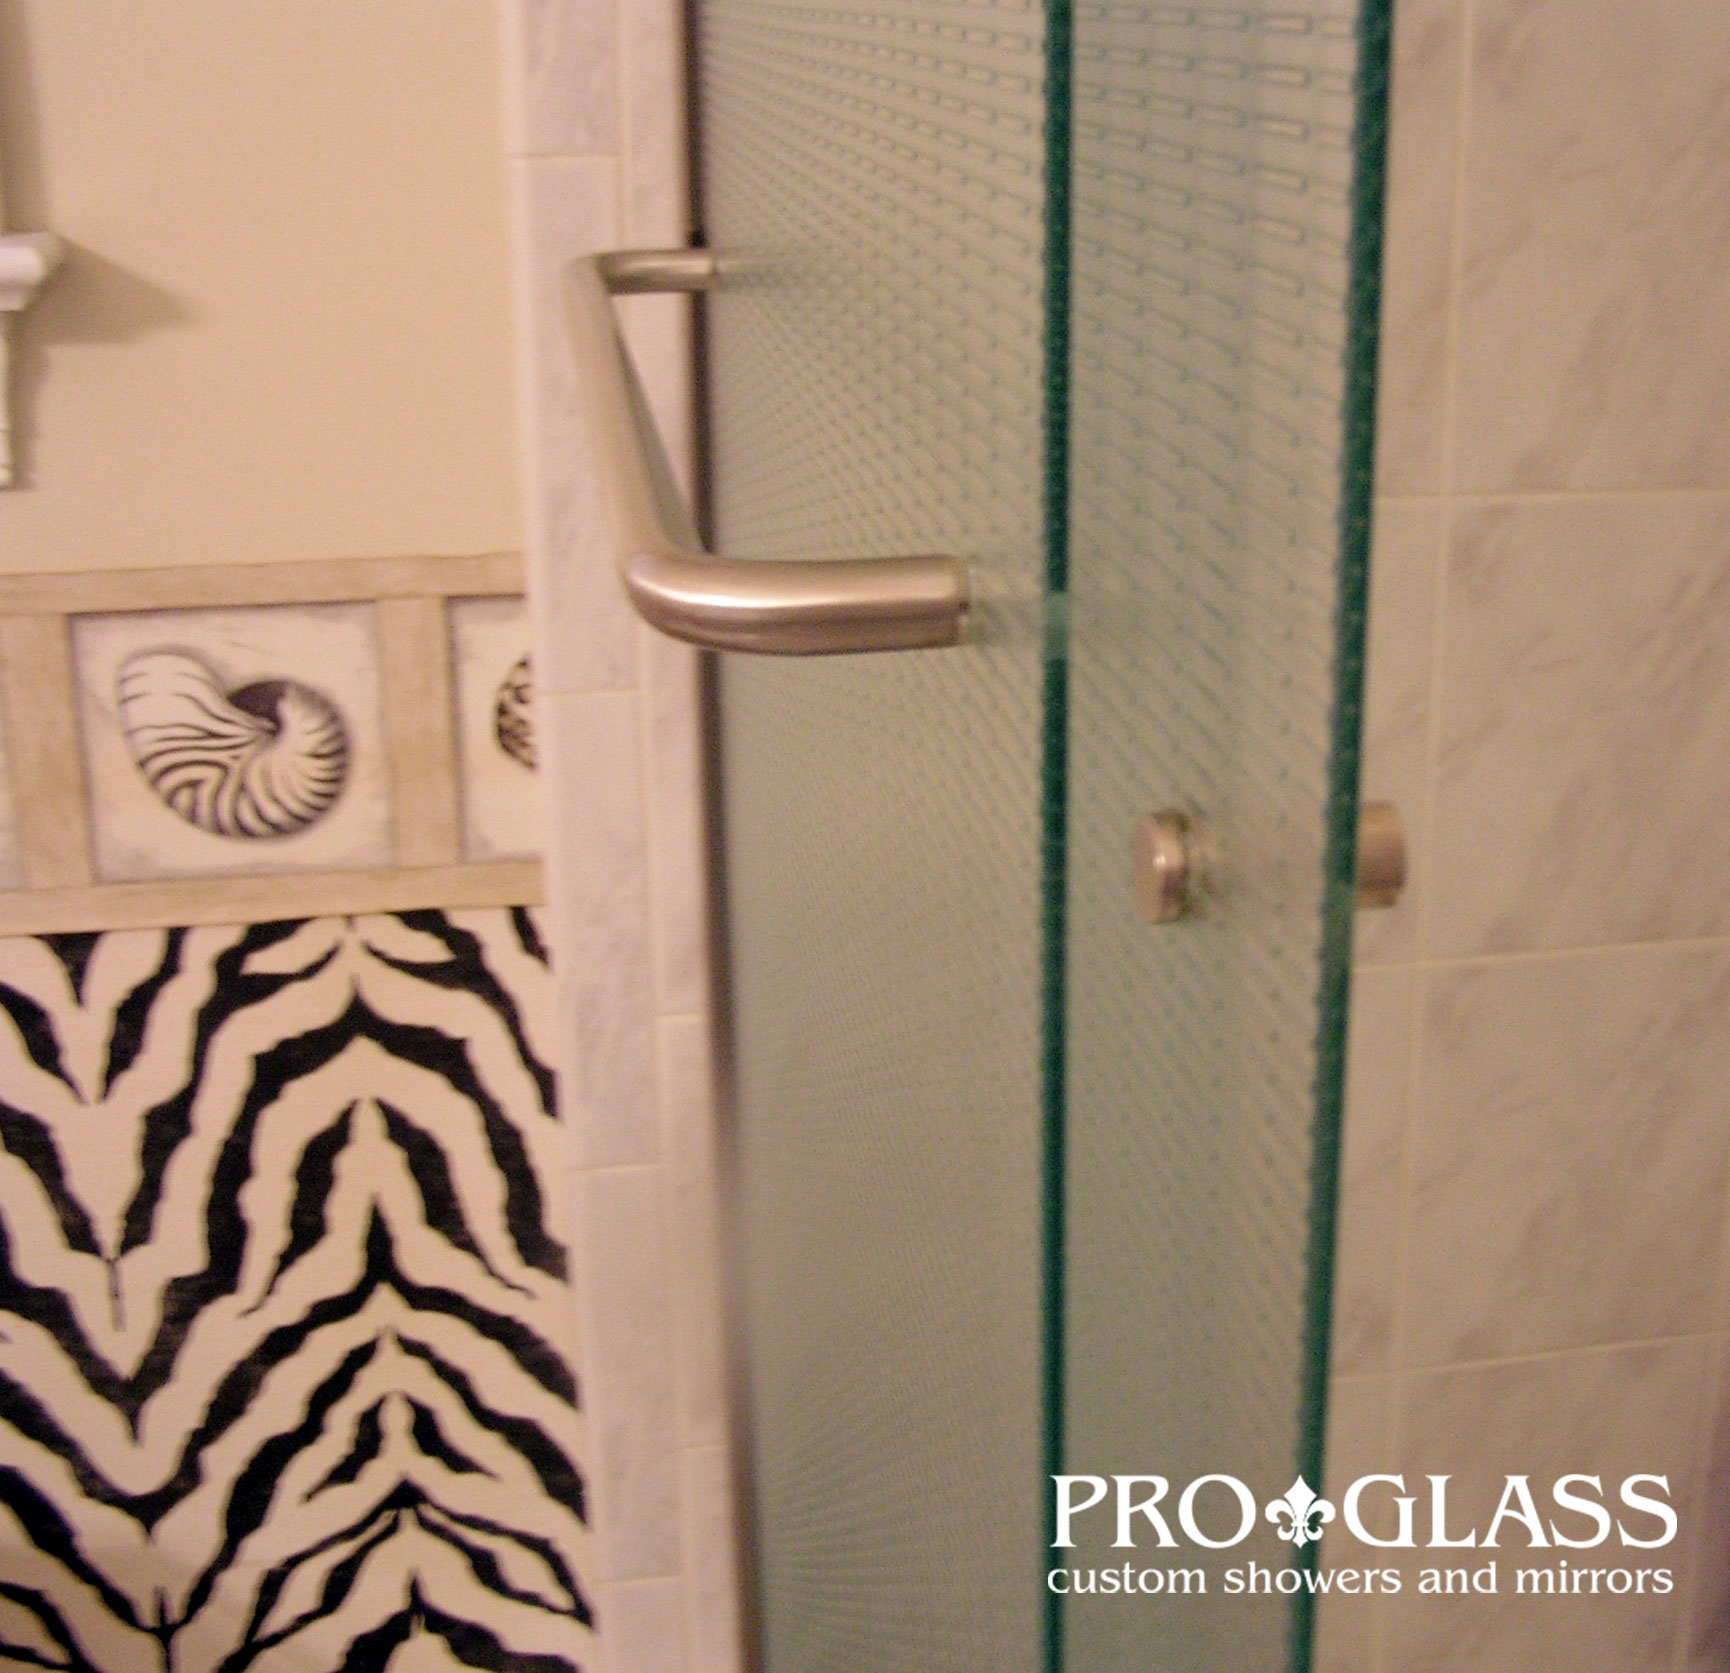 custom showers pro glass. Hardware Gallery  At ProGlass Shower Door Raleigh Proglass Custom Showers